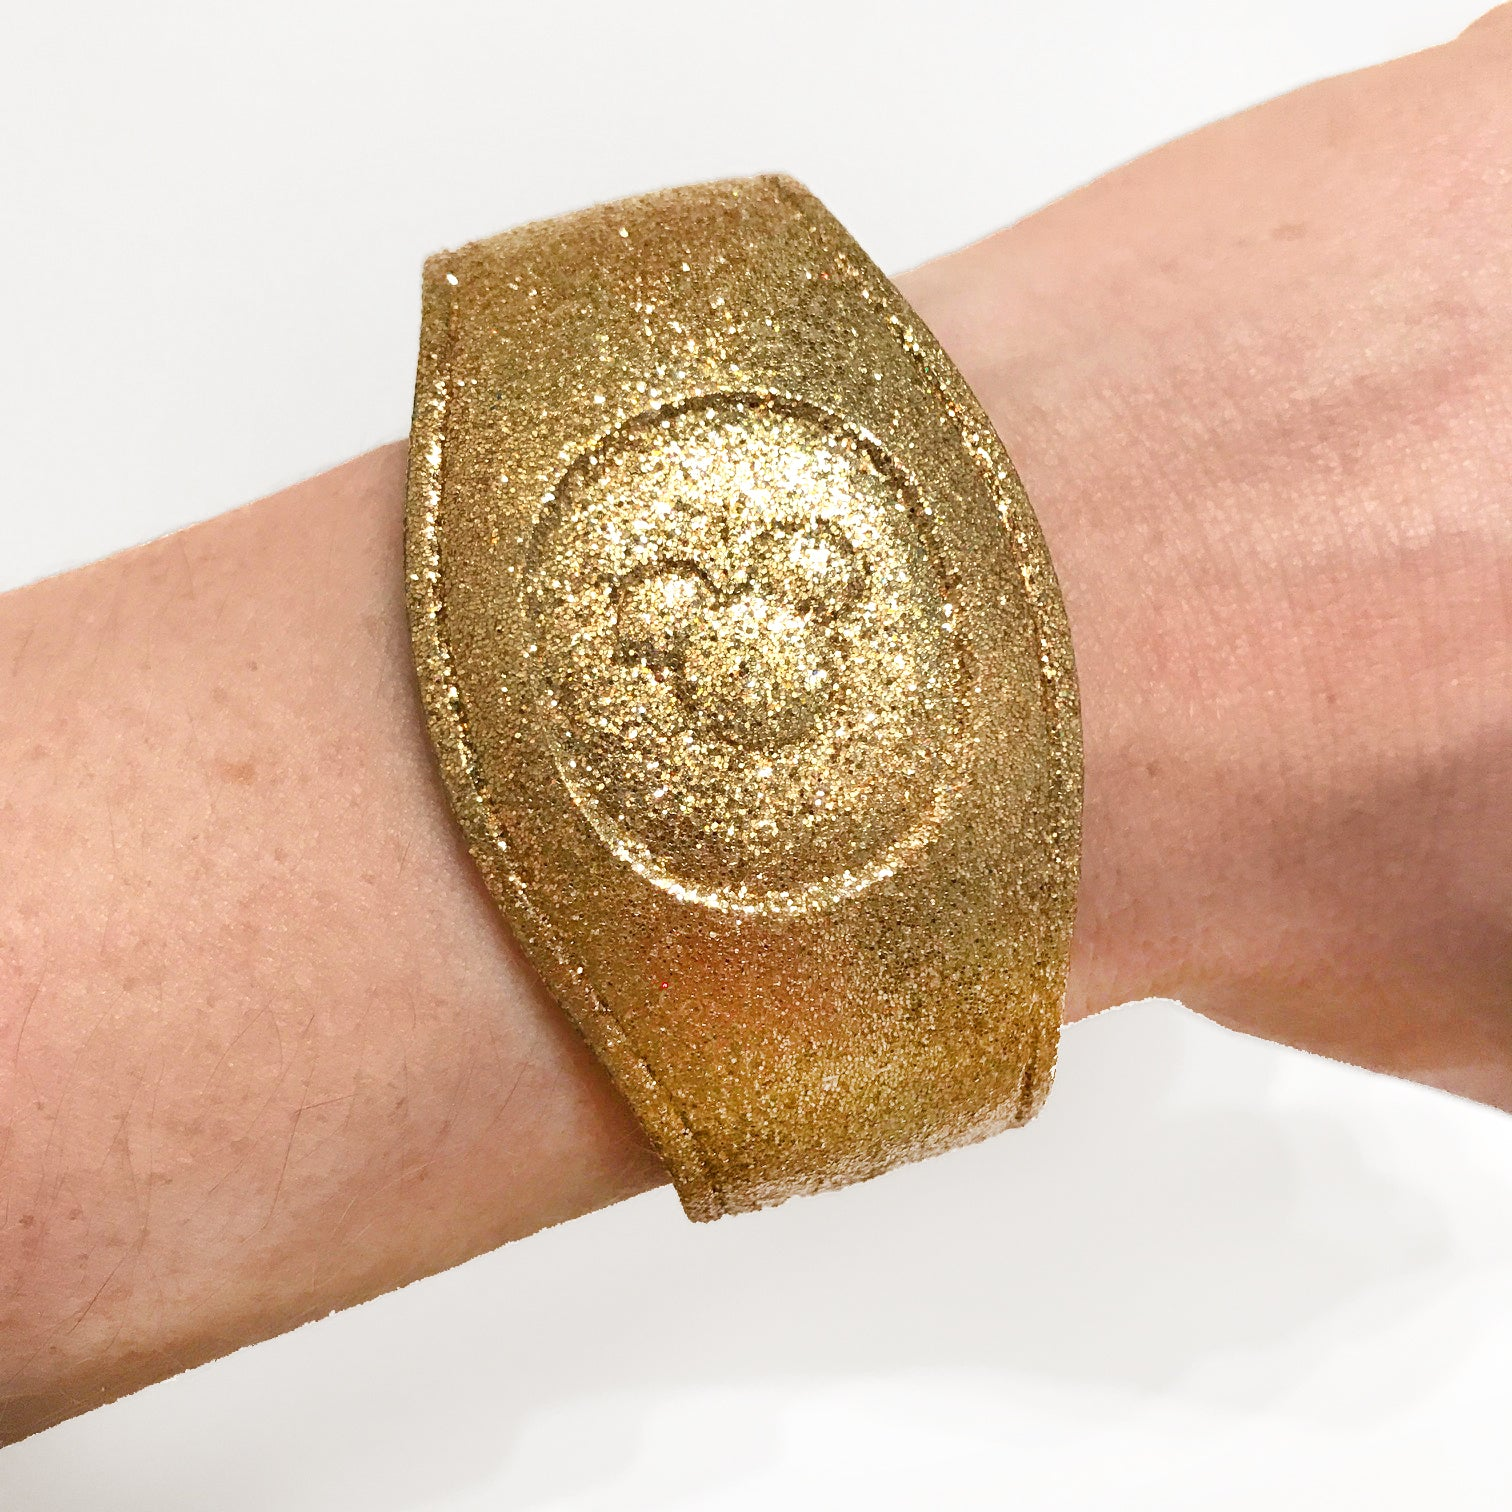 Gold Glitter Magic Band